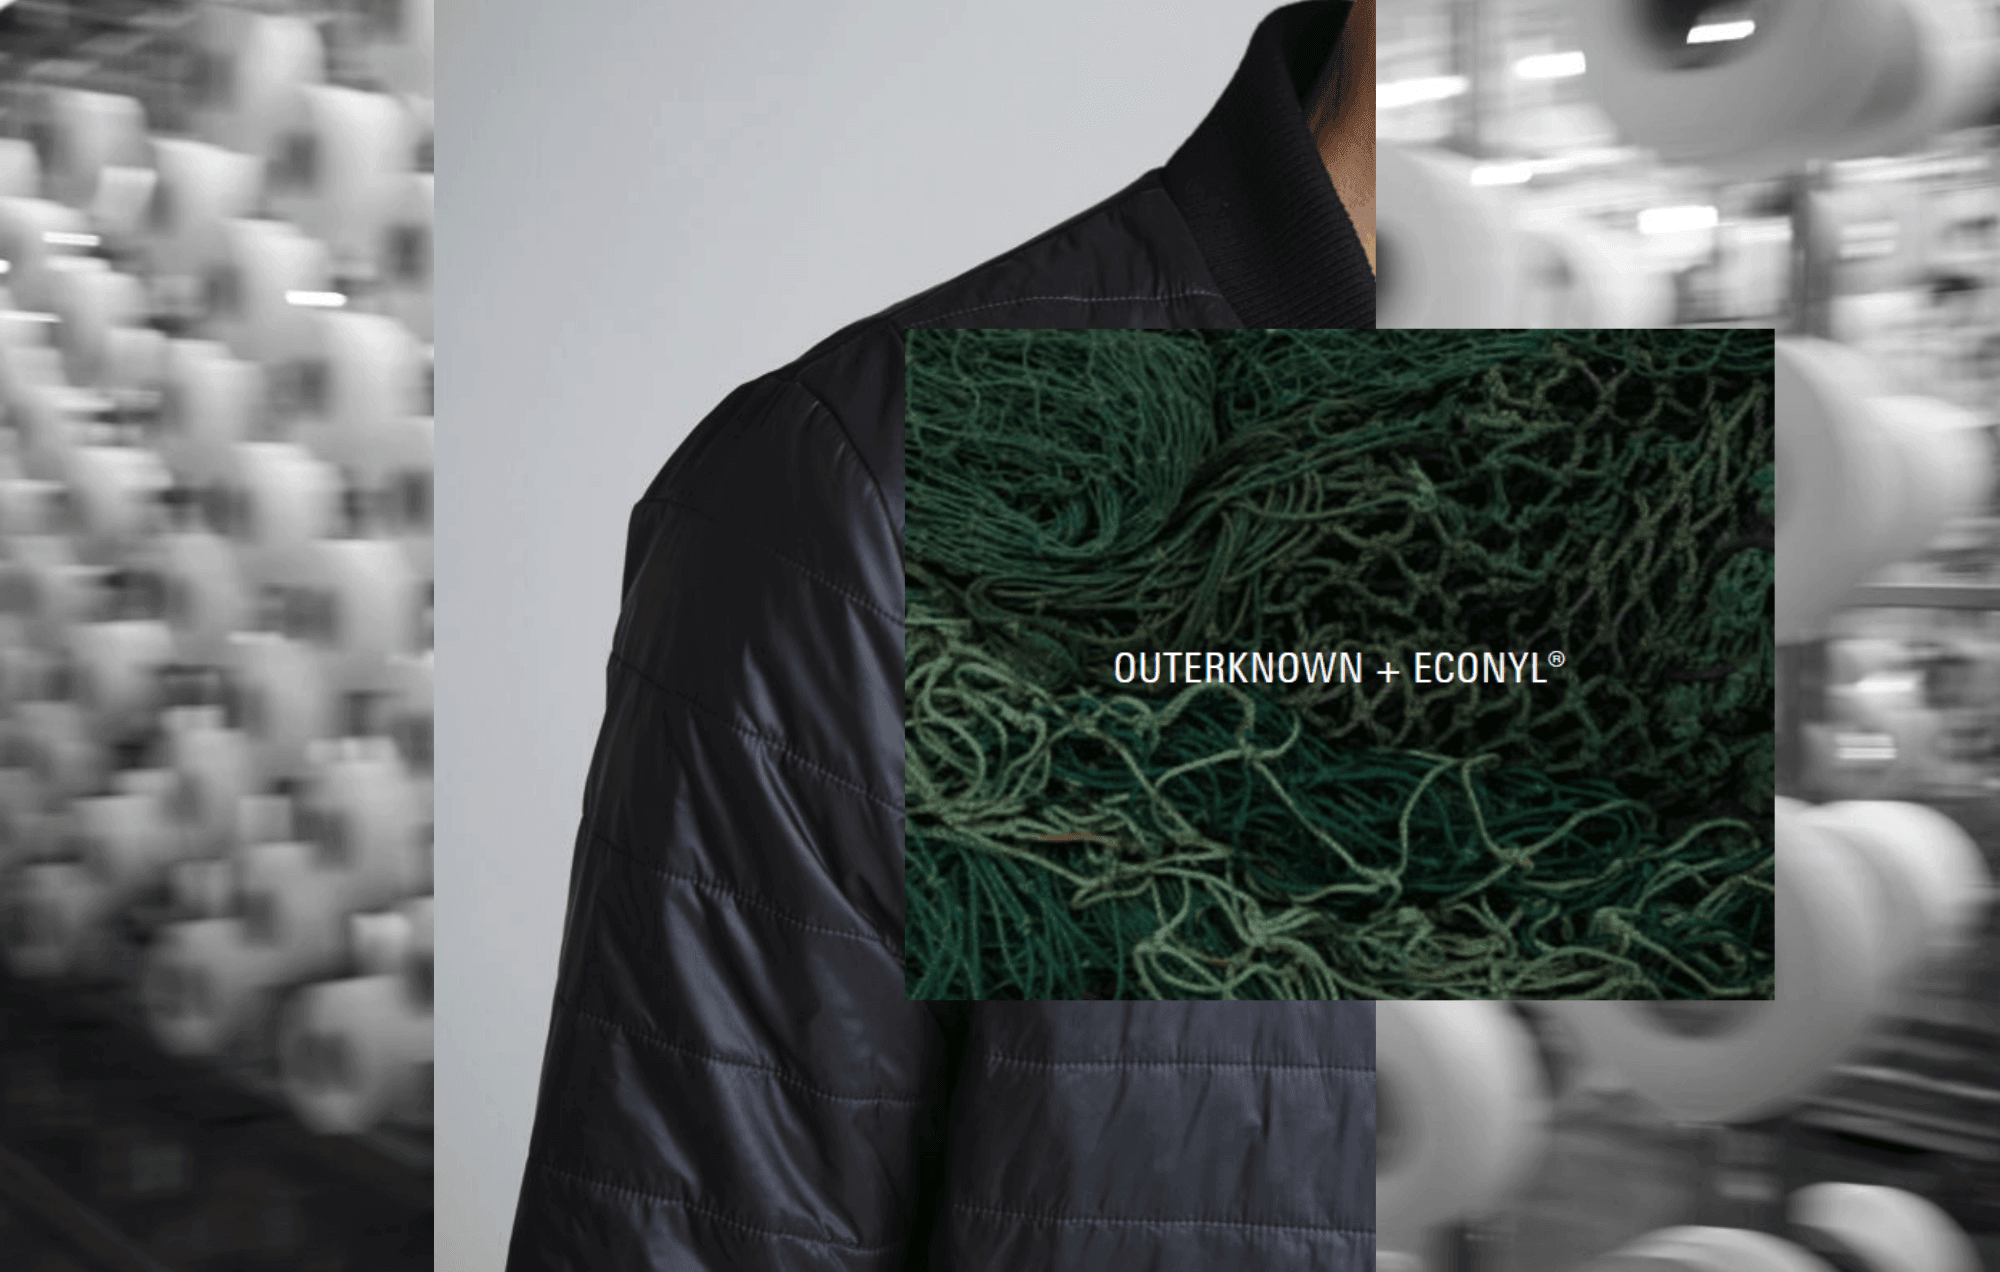 A decade in sustainable fashion: recycled econyl outerknown